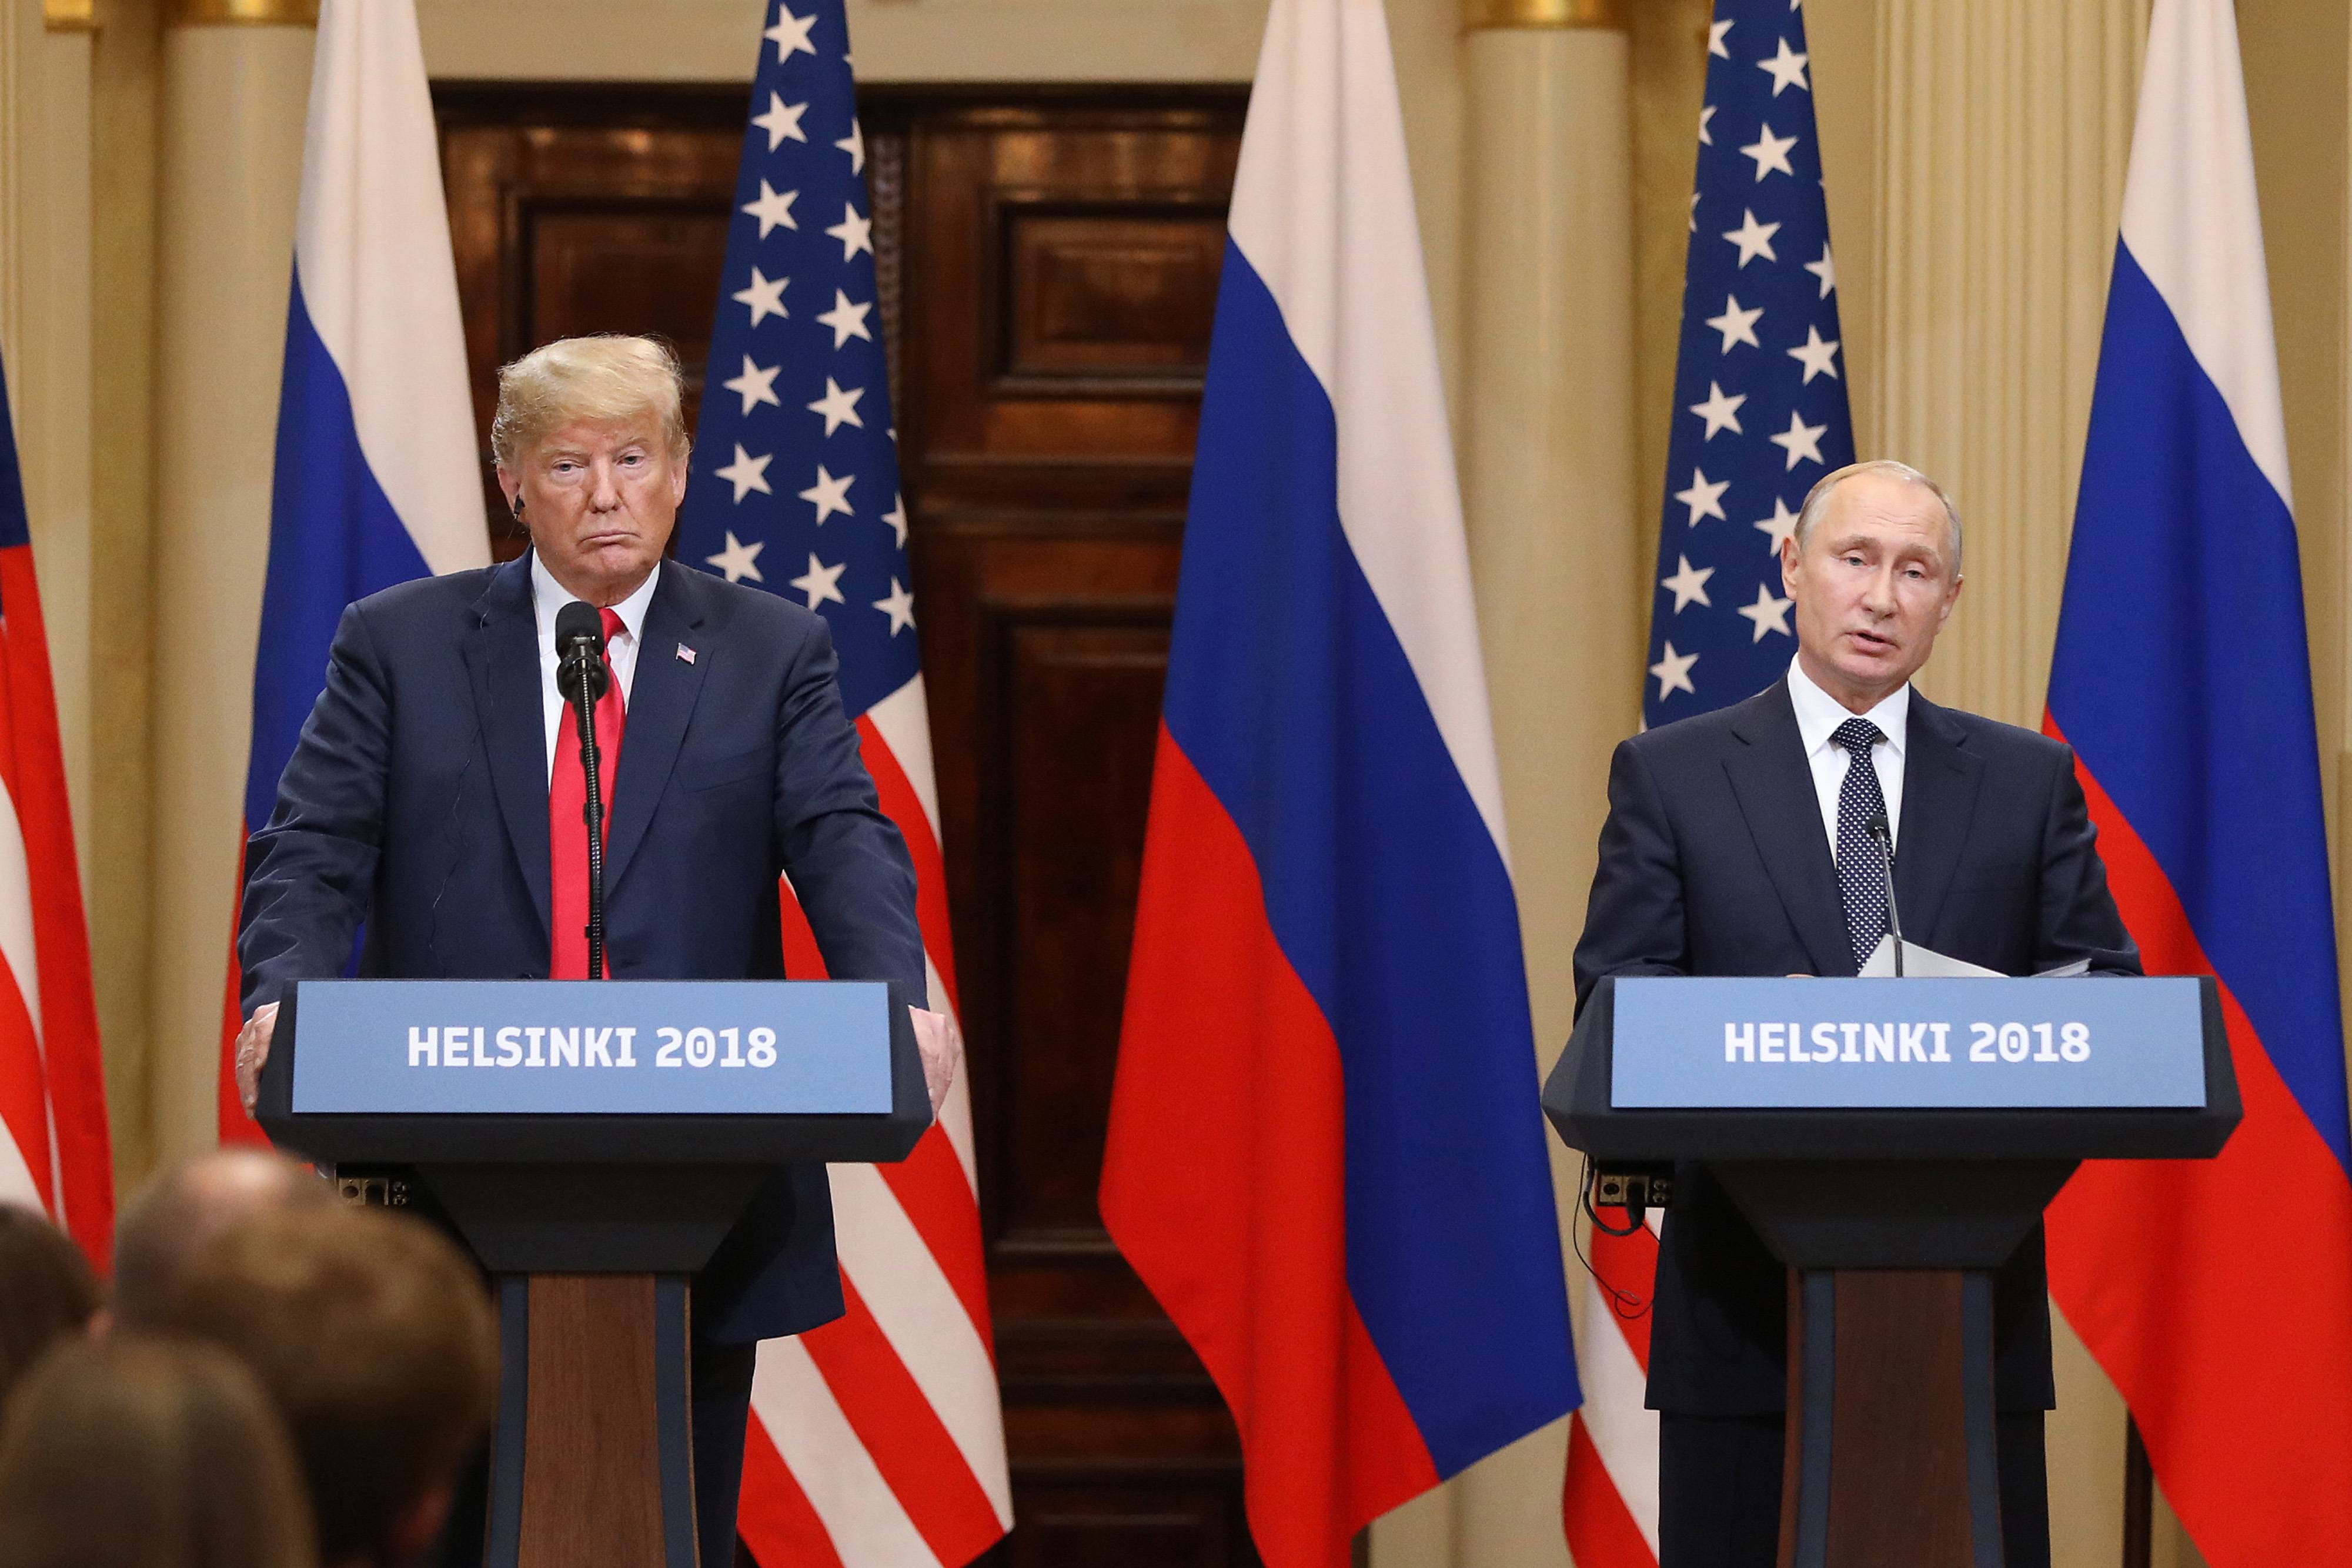 President Donald Trump, left, listens as Vladimir Putin, Russia's president, speaks during a news conference in Helsinki, Finland, on July 16, 2018. MUST CREDIT: Bloomberg photo by Chris Ratcliffe